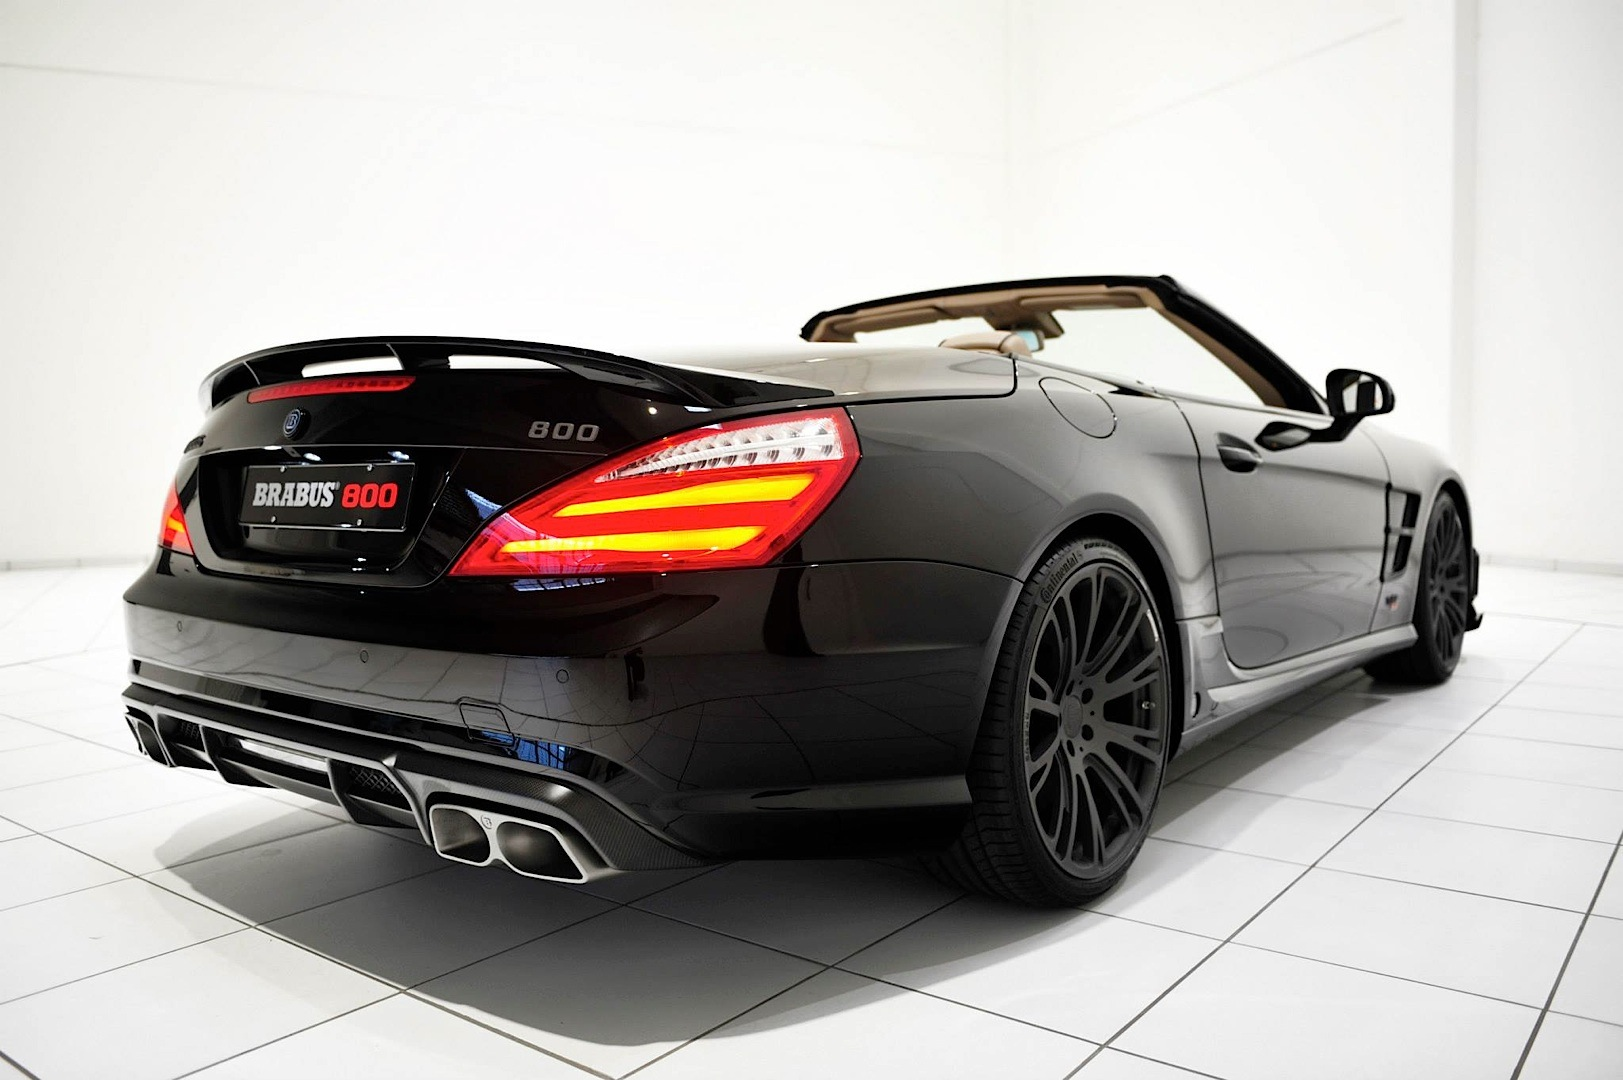 brabus 800 package takes the sl 65 amg up a notch autoevolutionbrabus 800 based on the sl 65 amg (r231)